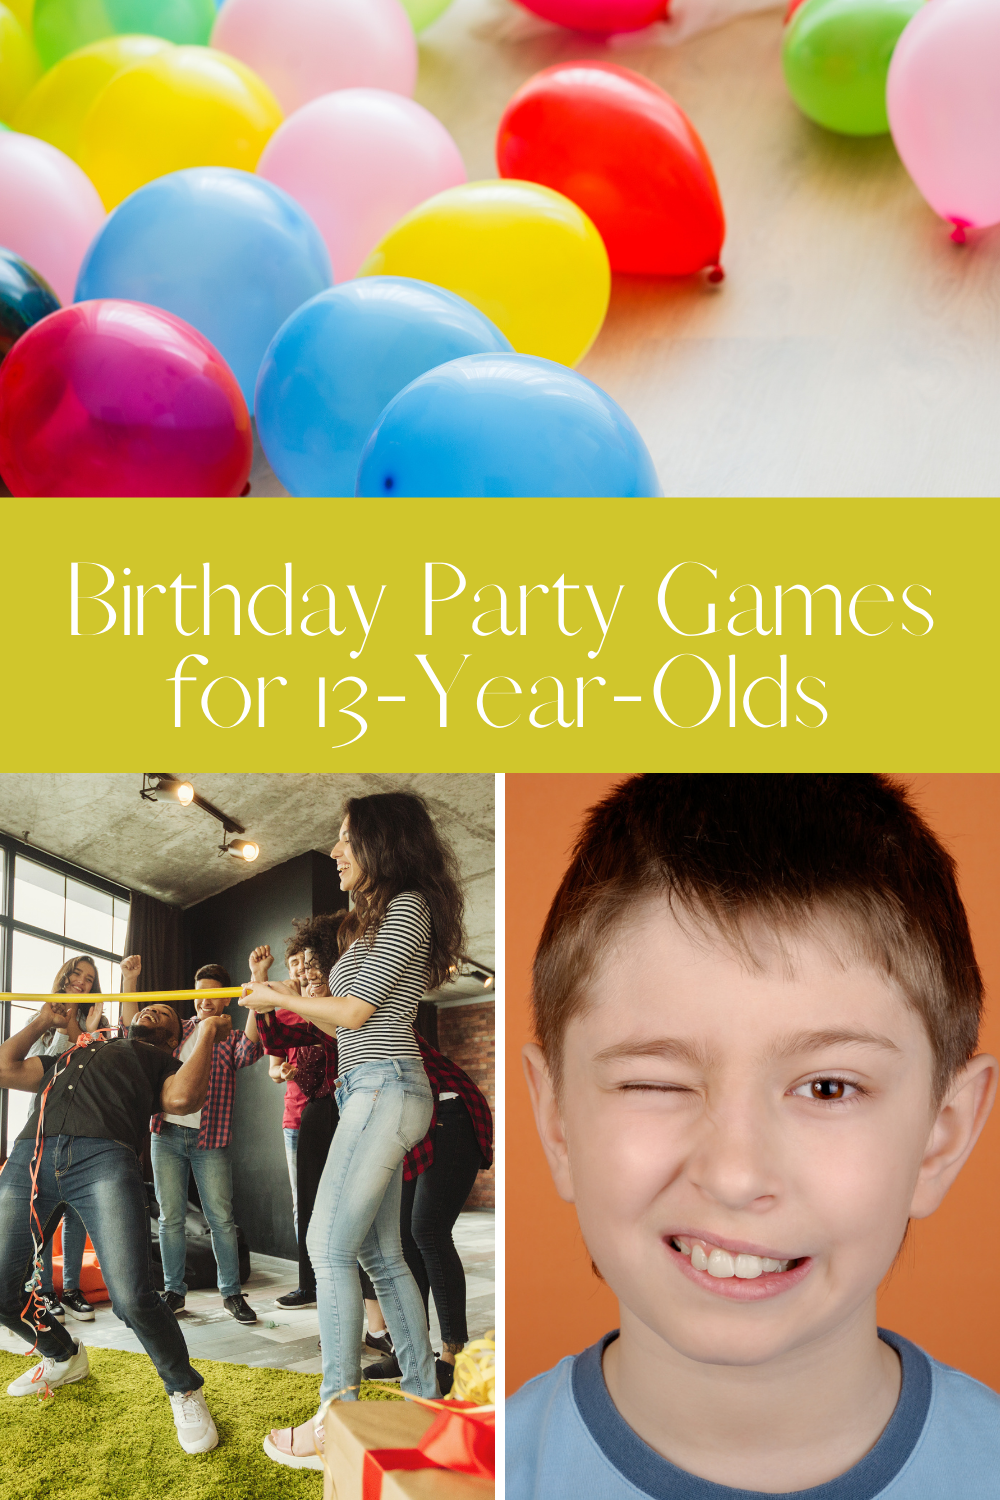 Indoor Party Games for 13 Year Olds